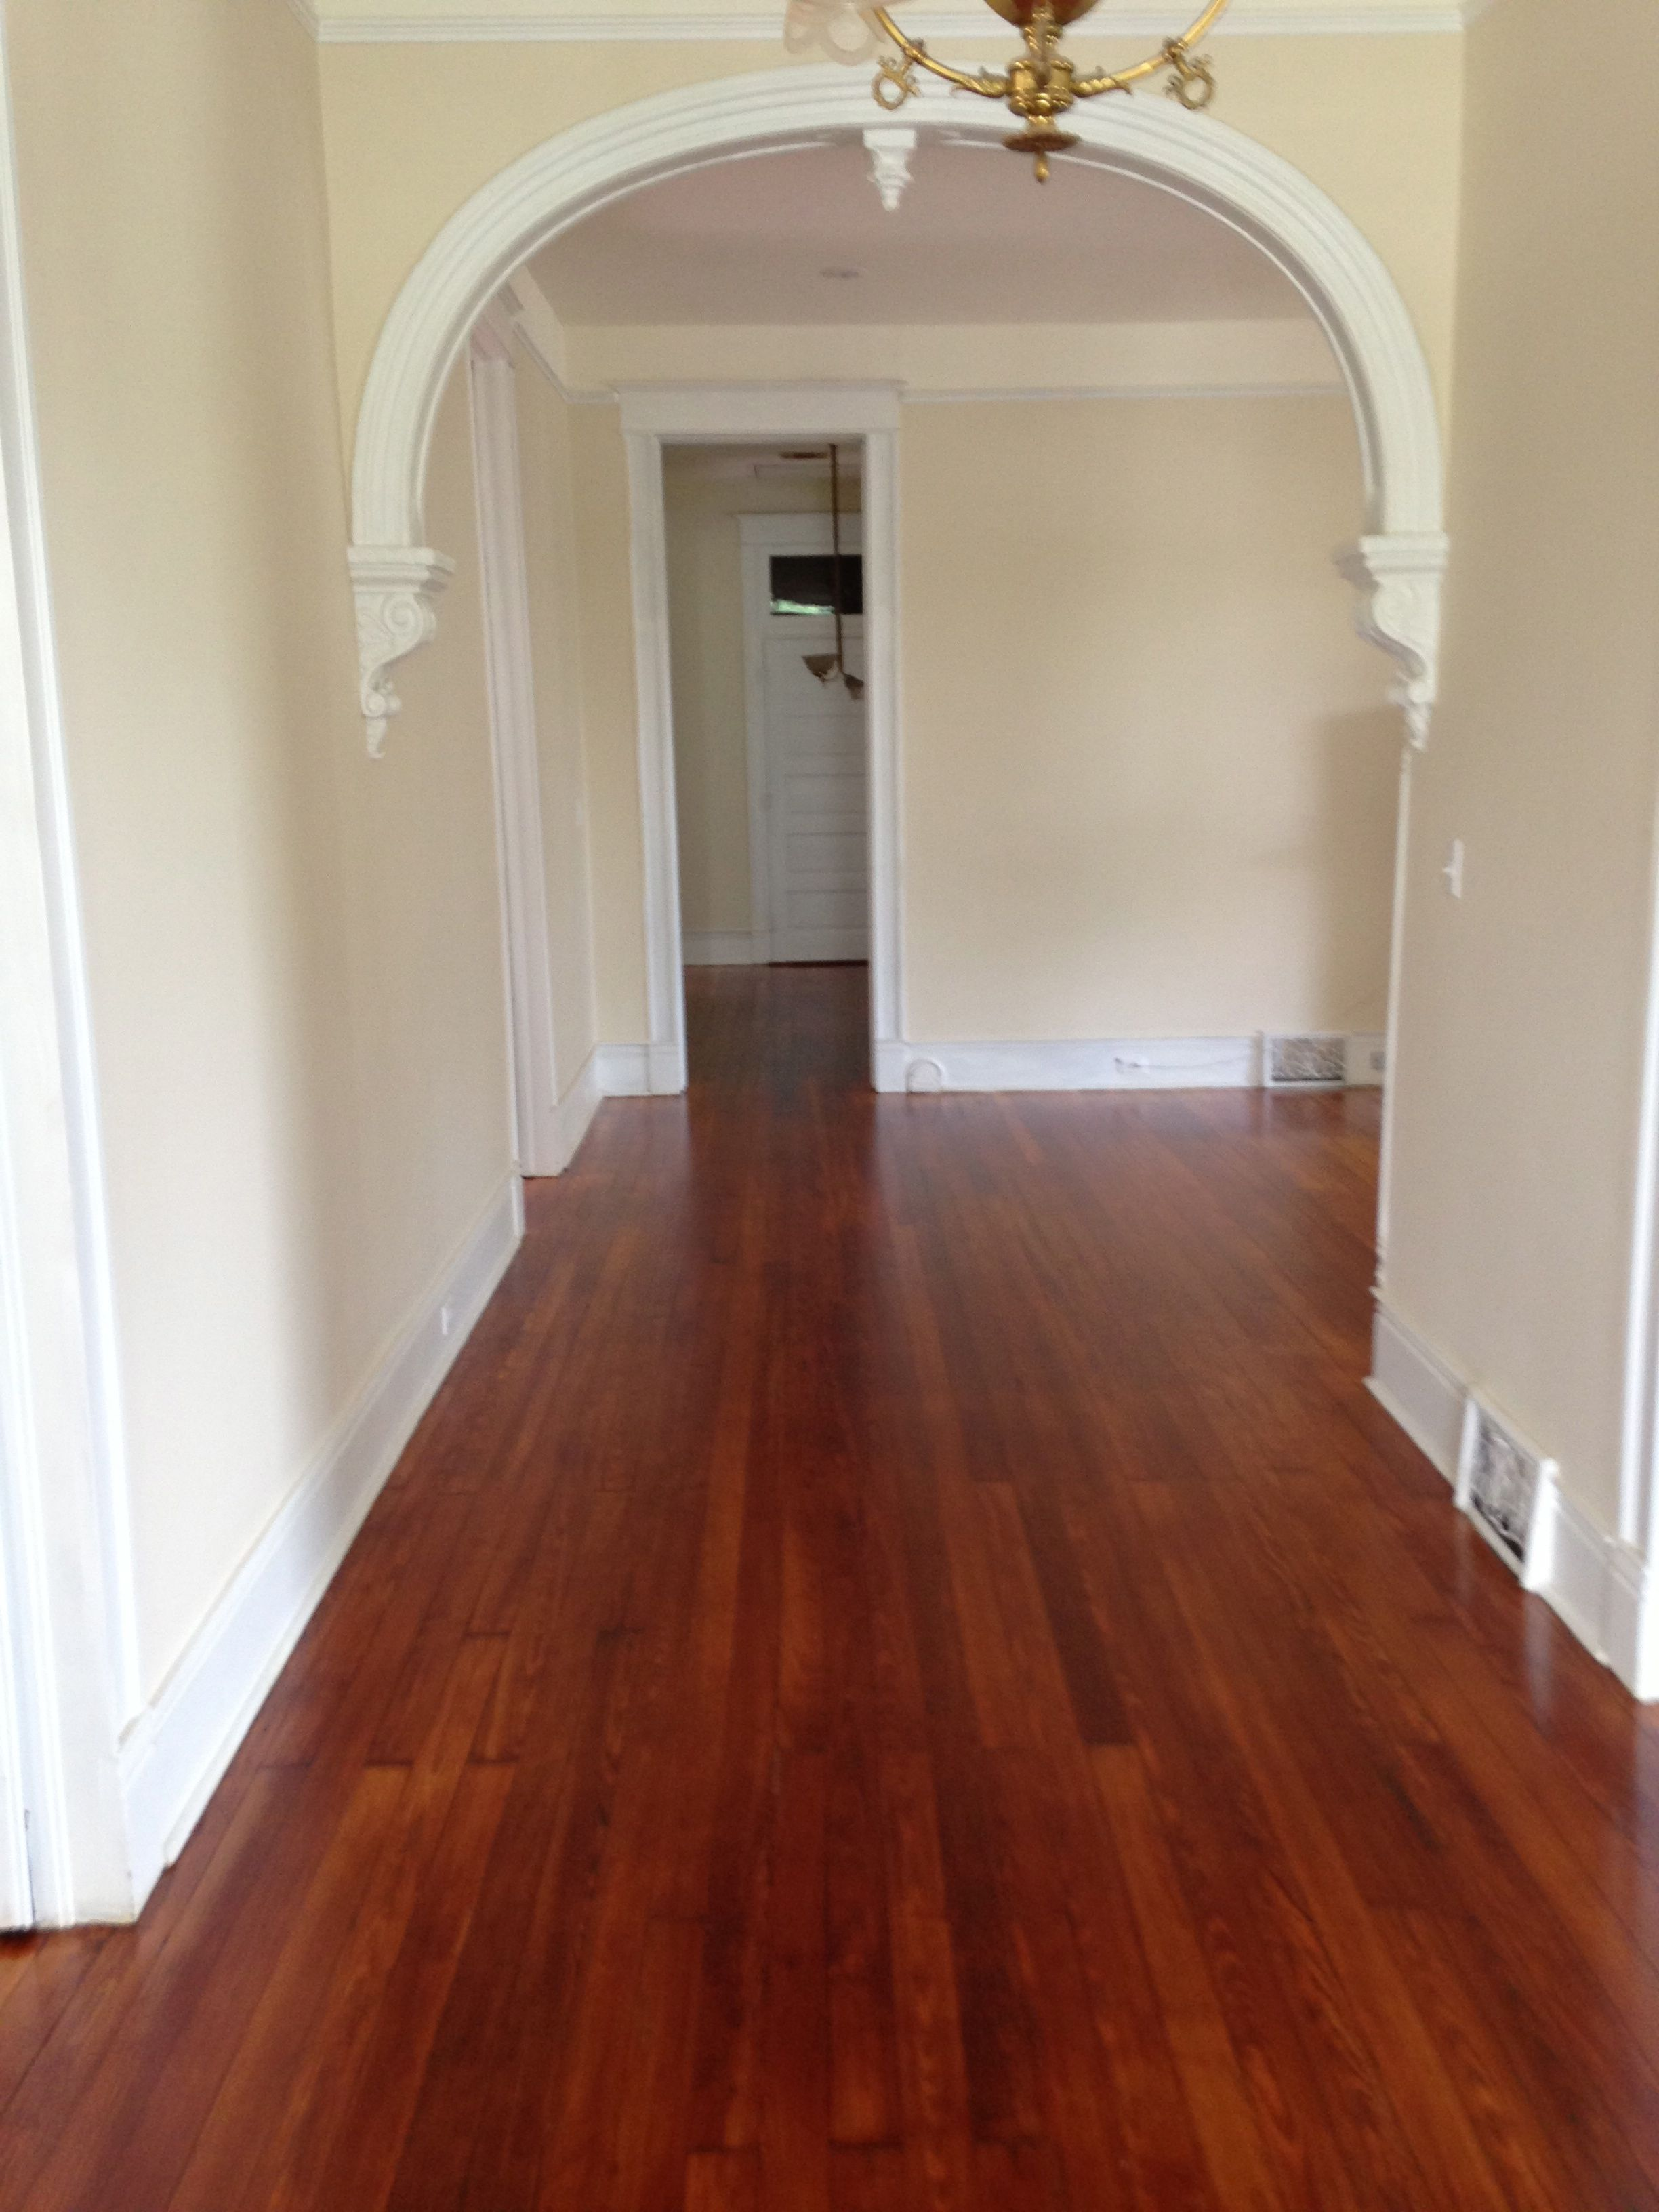 Polyurethaned hardwood floors in an arched hallway